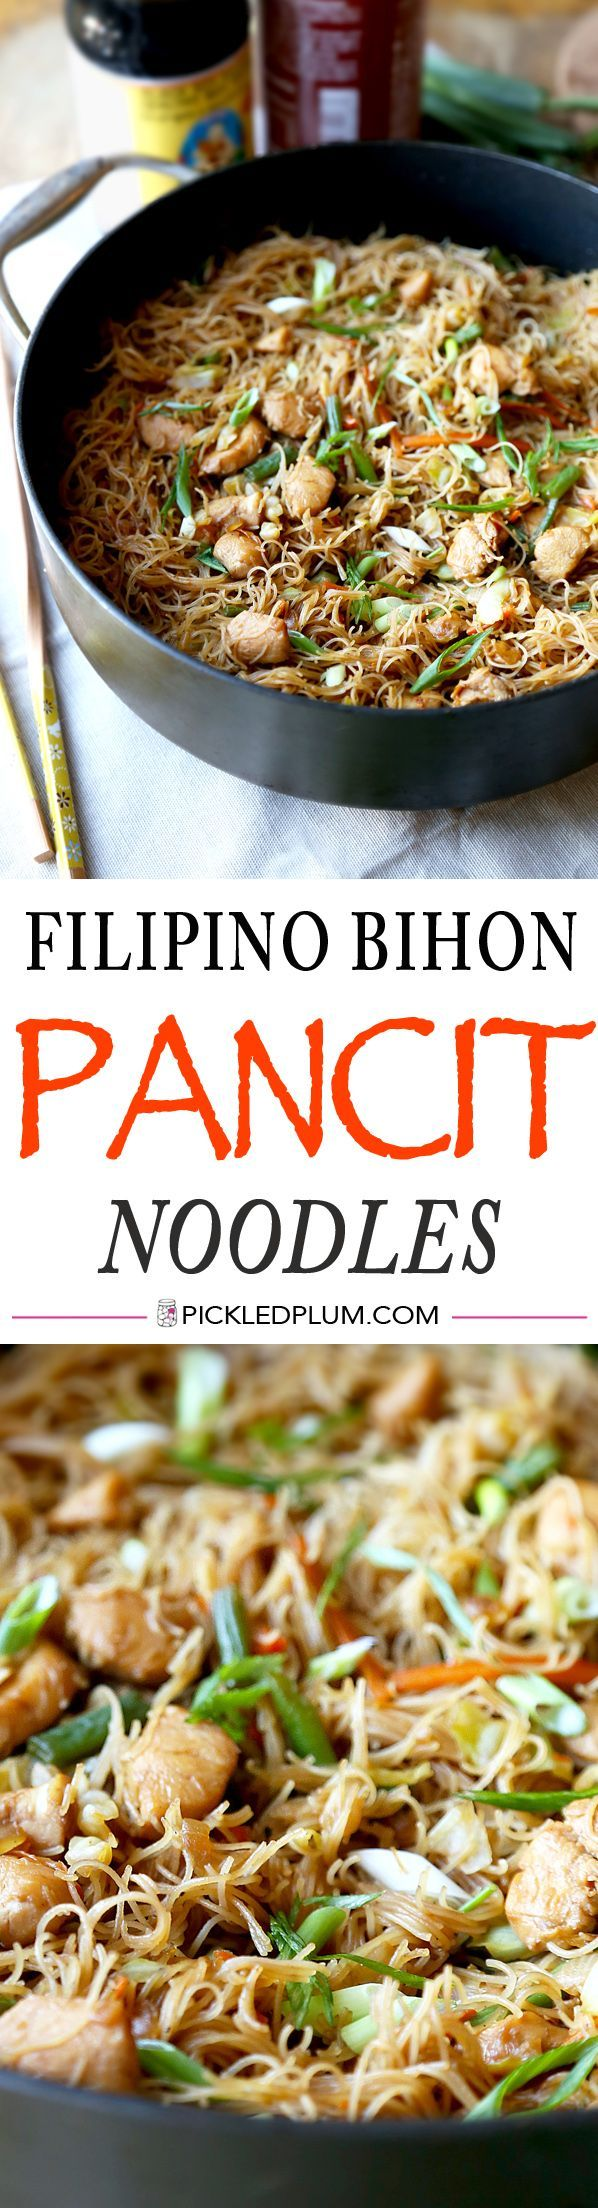 Filipino Bihon Pancit Noodles - Sweet, savory, Easy and ready in less than 25 minutes! Recipe, Asian, noodles, stir fry, easy, dinner, healthy | http://pickledplum.com